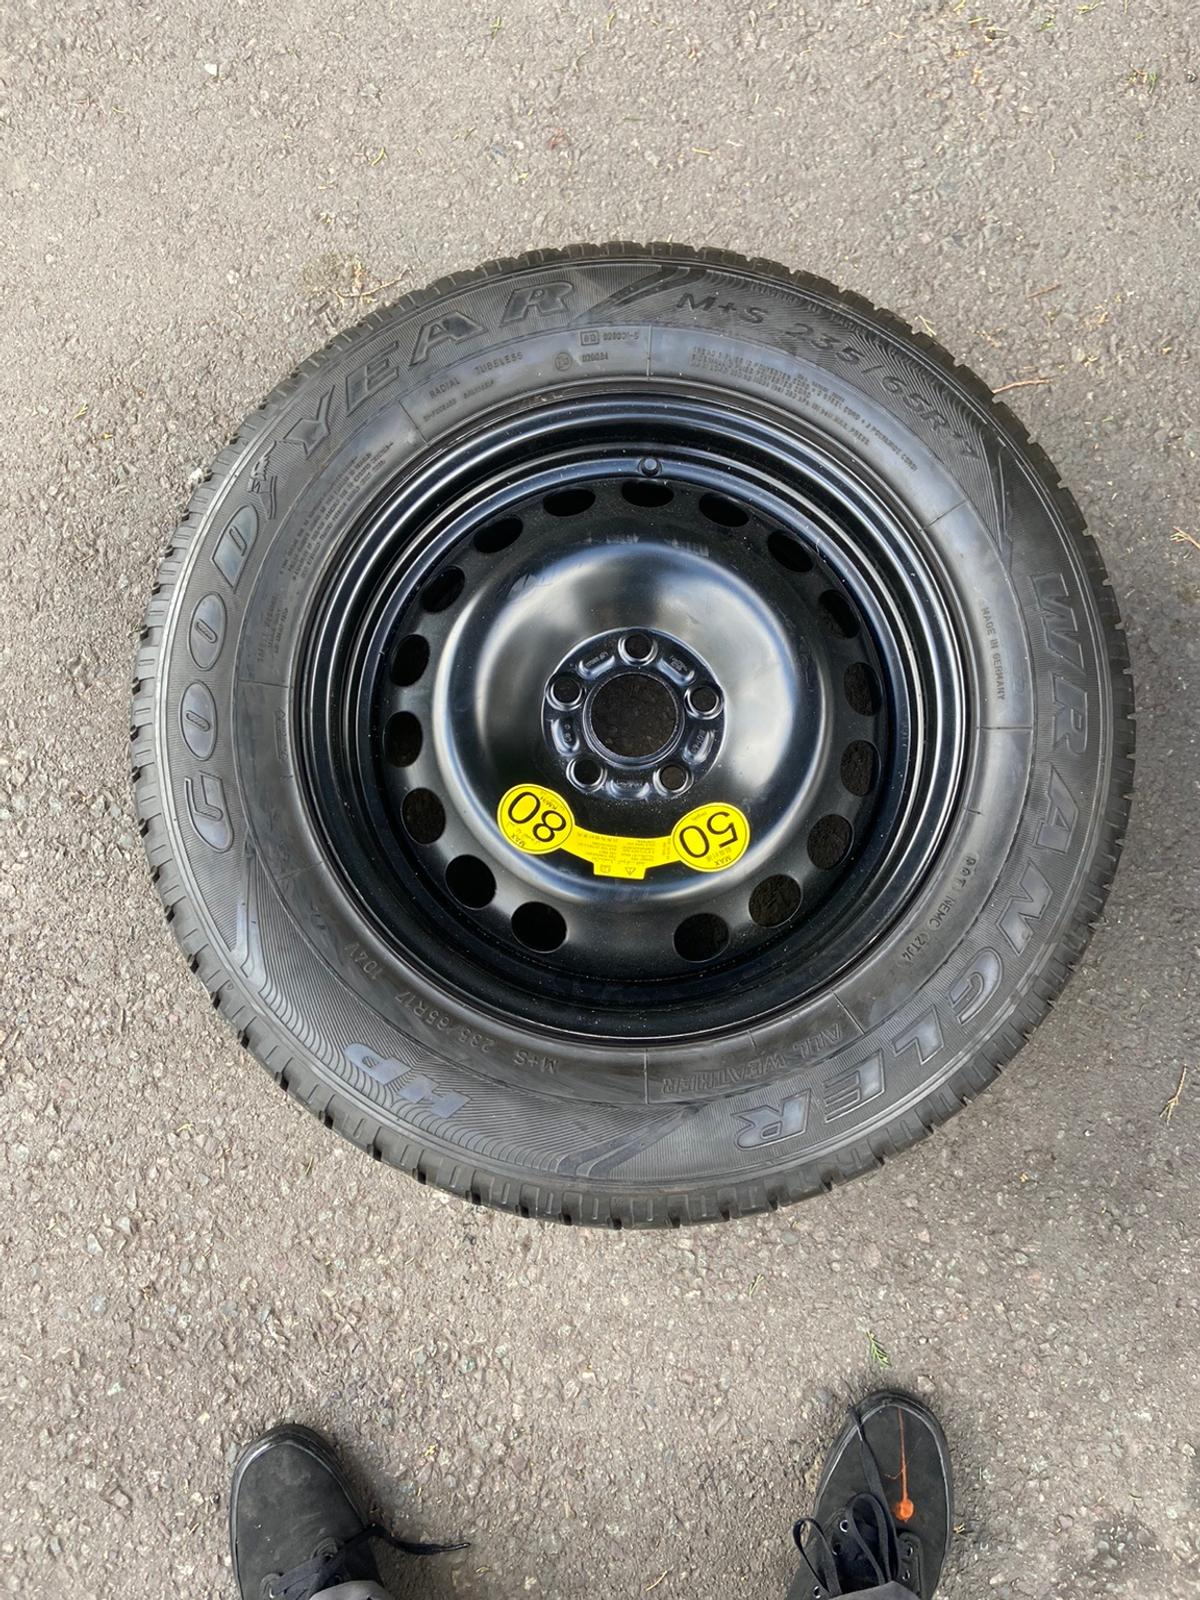 Spare wheel for Land Rover brand new never used clearing out my world garage. 120 ONO